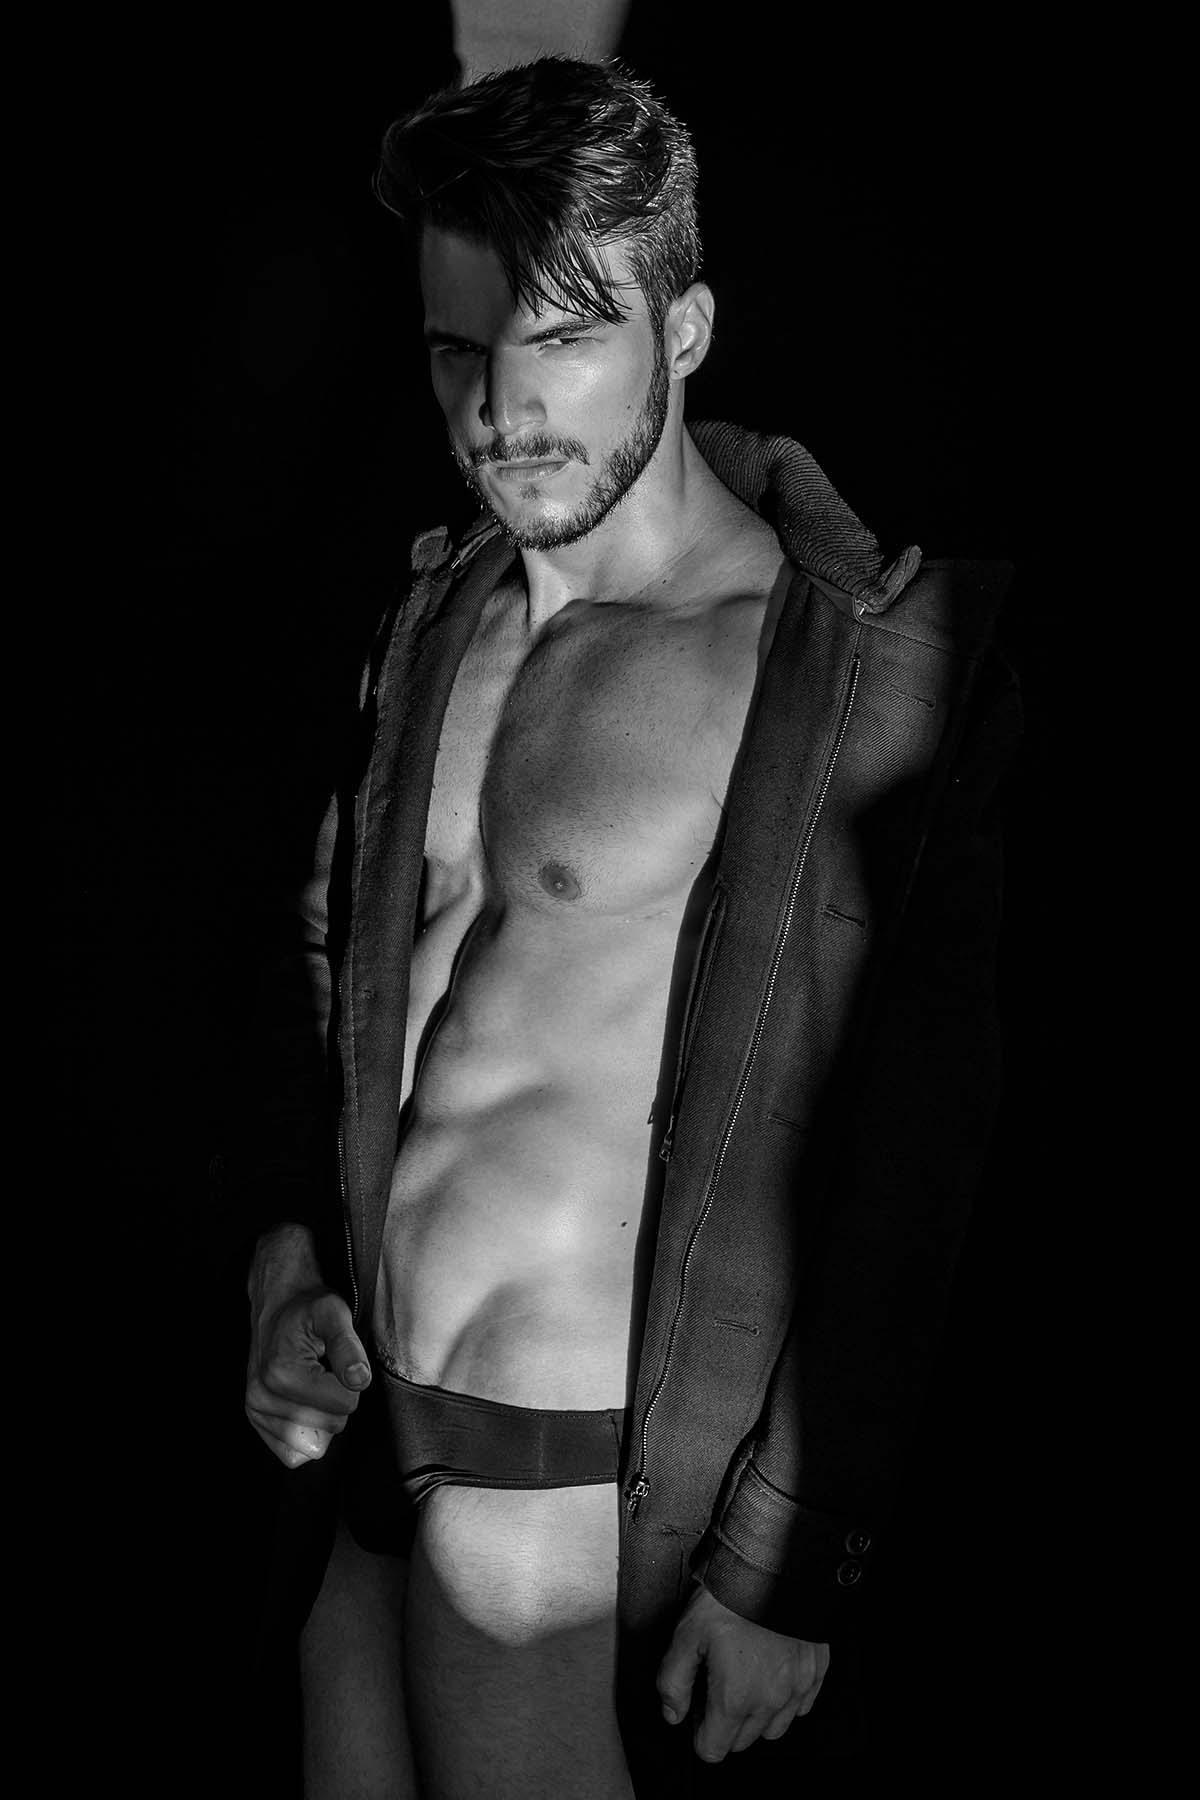 Alex Trevelin by Thiago Martini for Brazilian Male Model